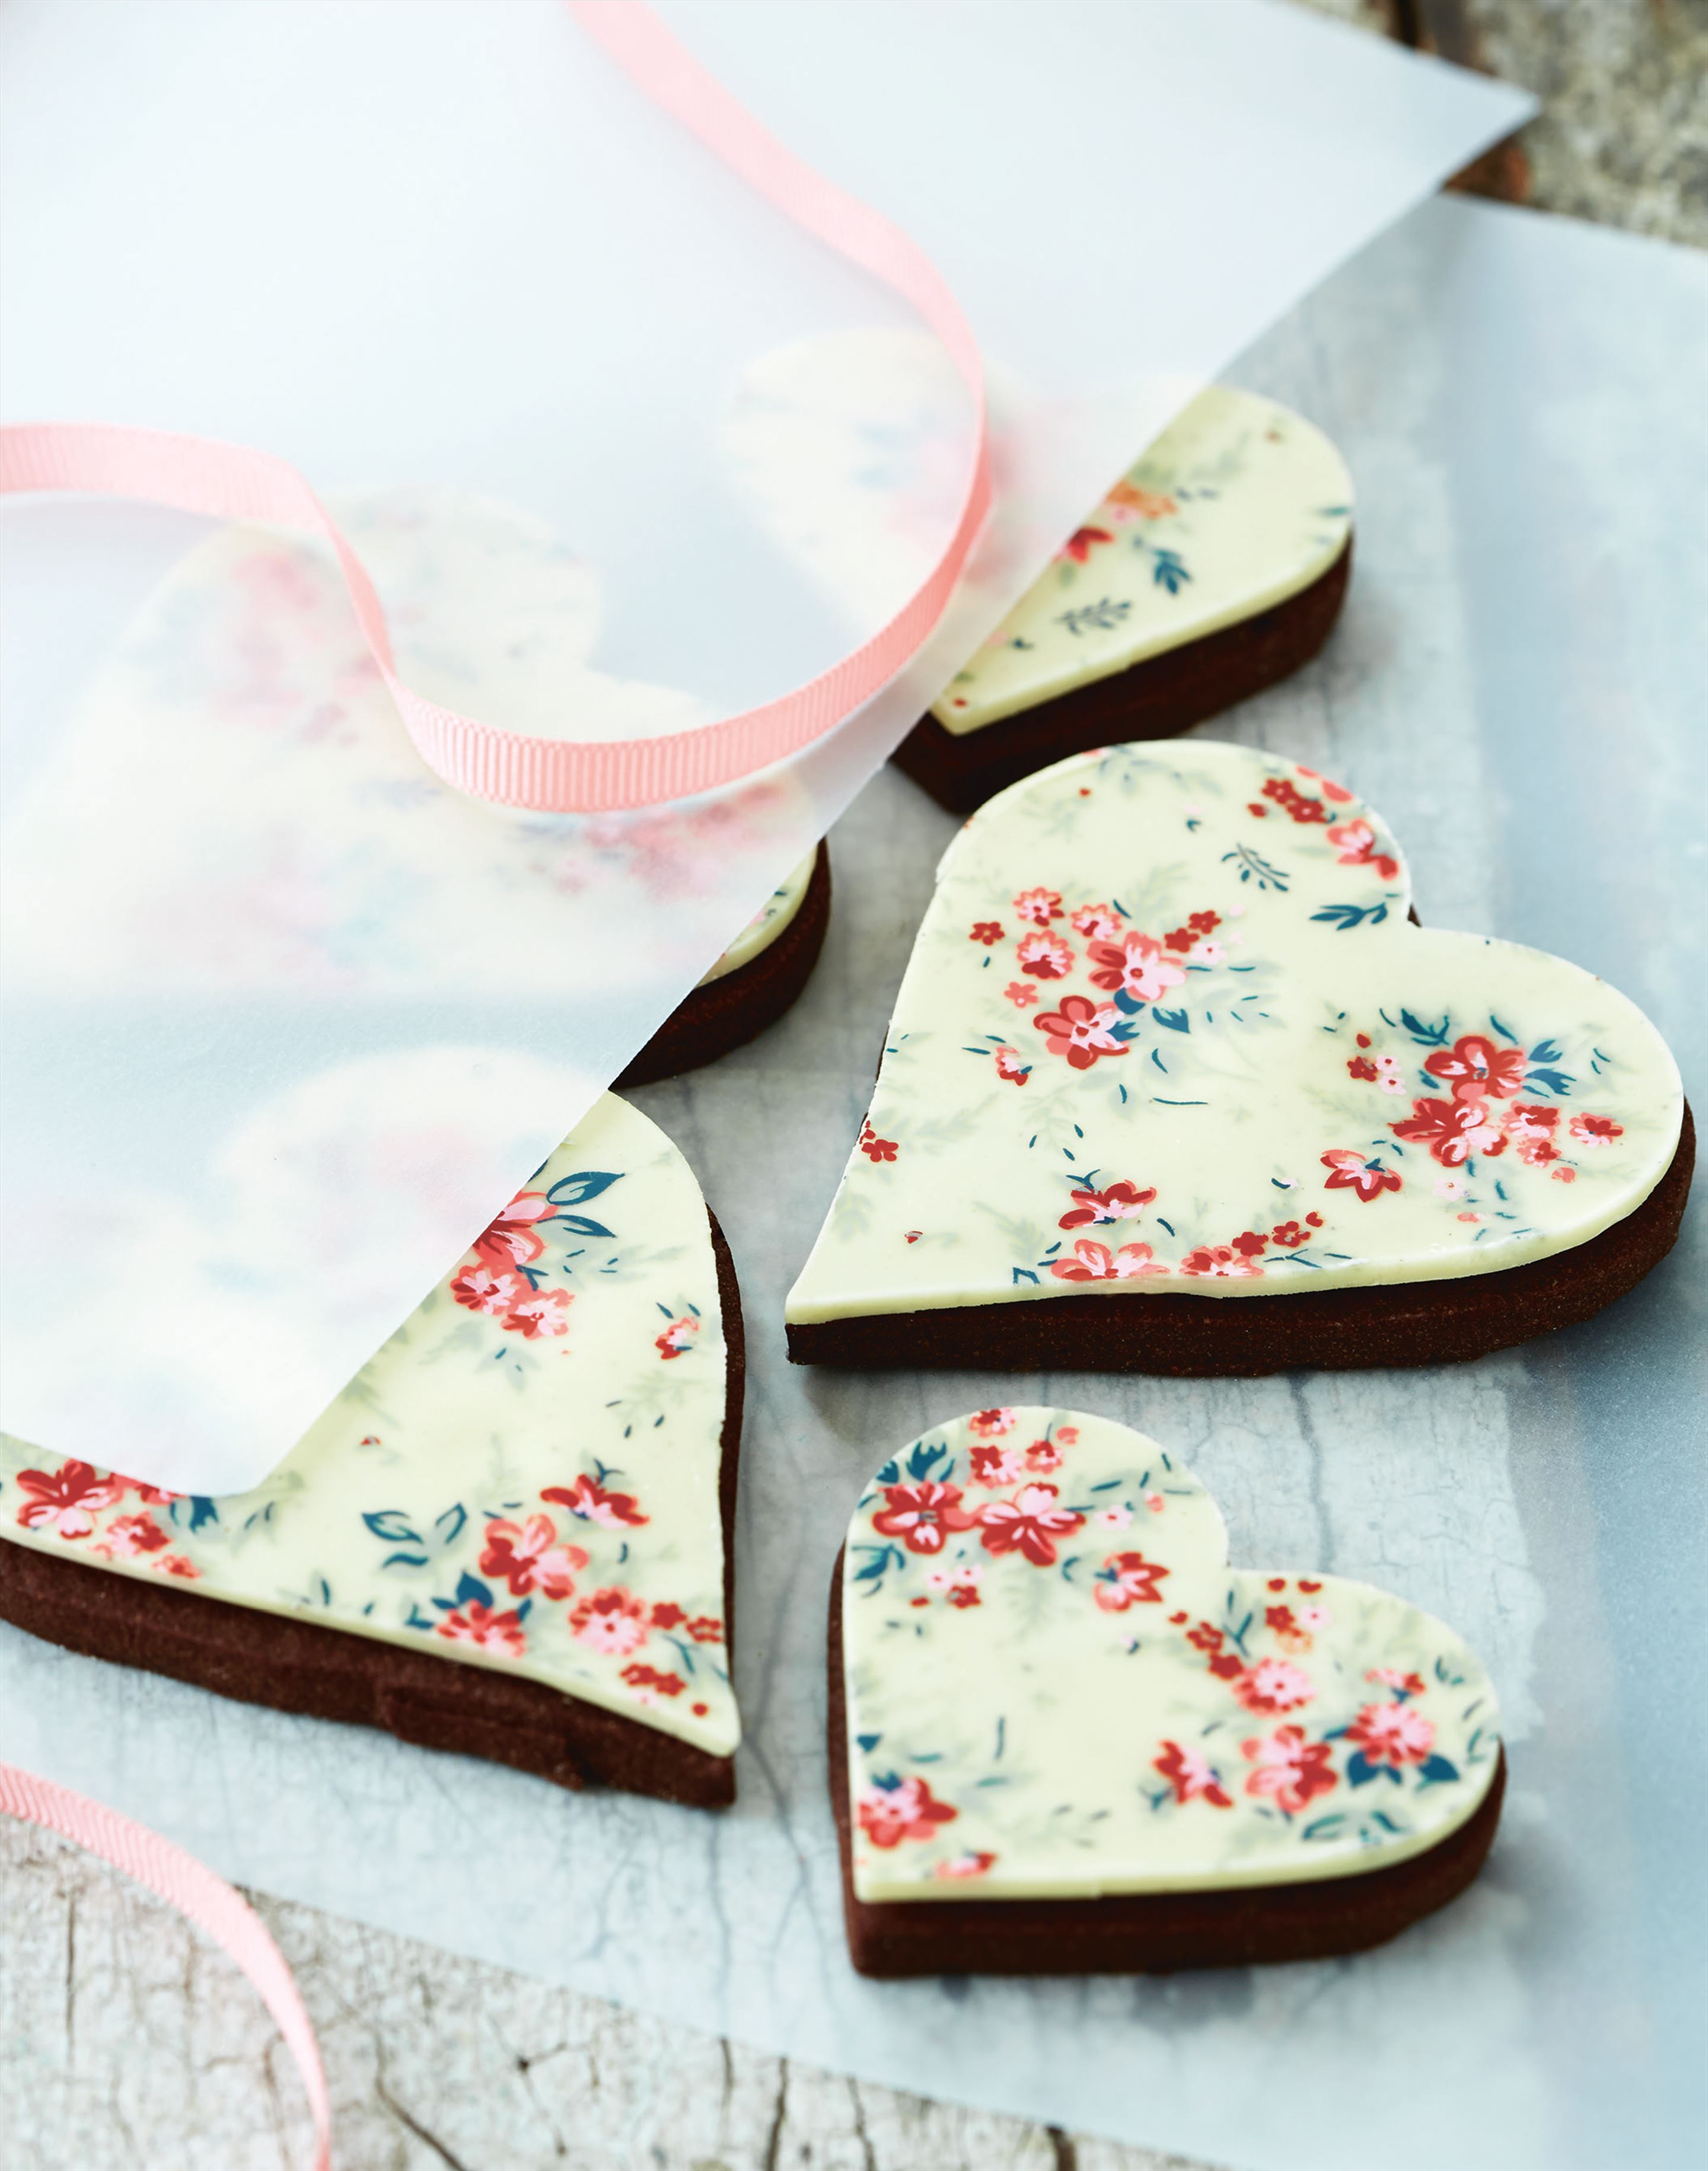 Liberty-print inspired chocolate hearts